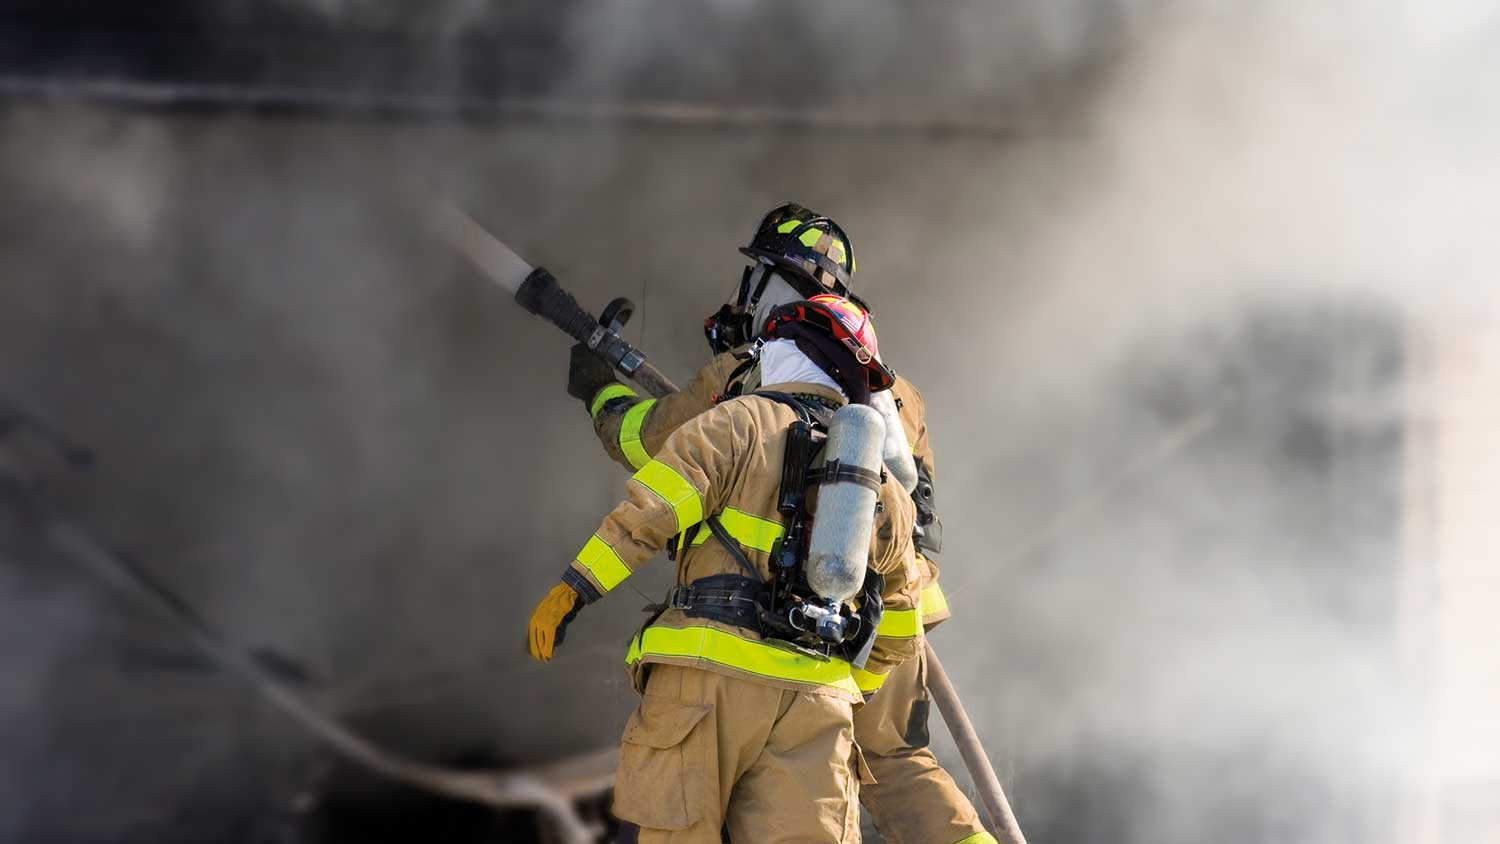 Two firefighters holding the hose and surrounded by smoke